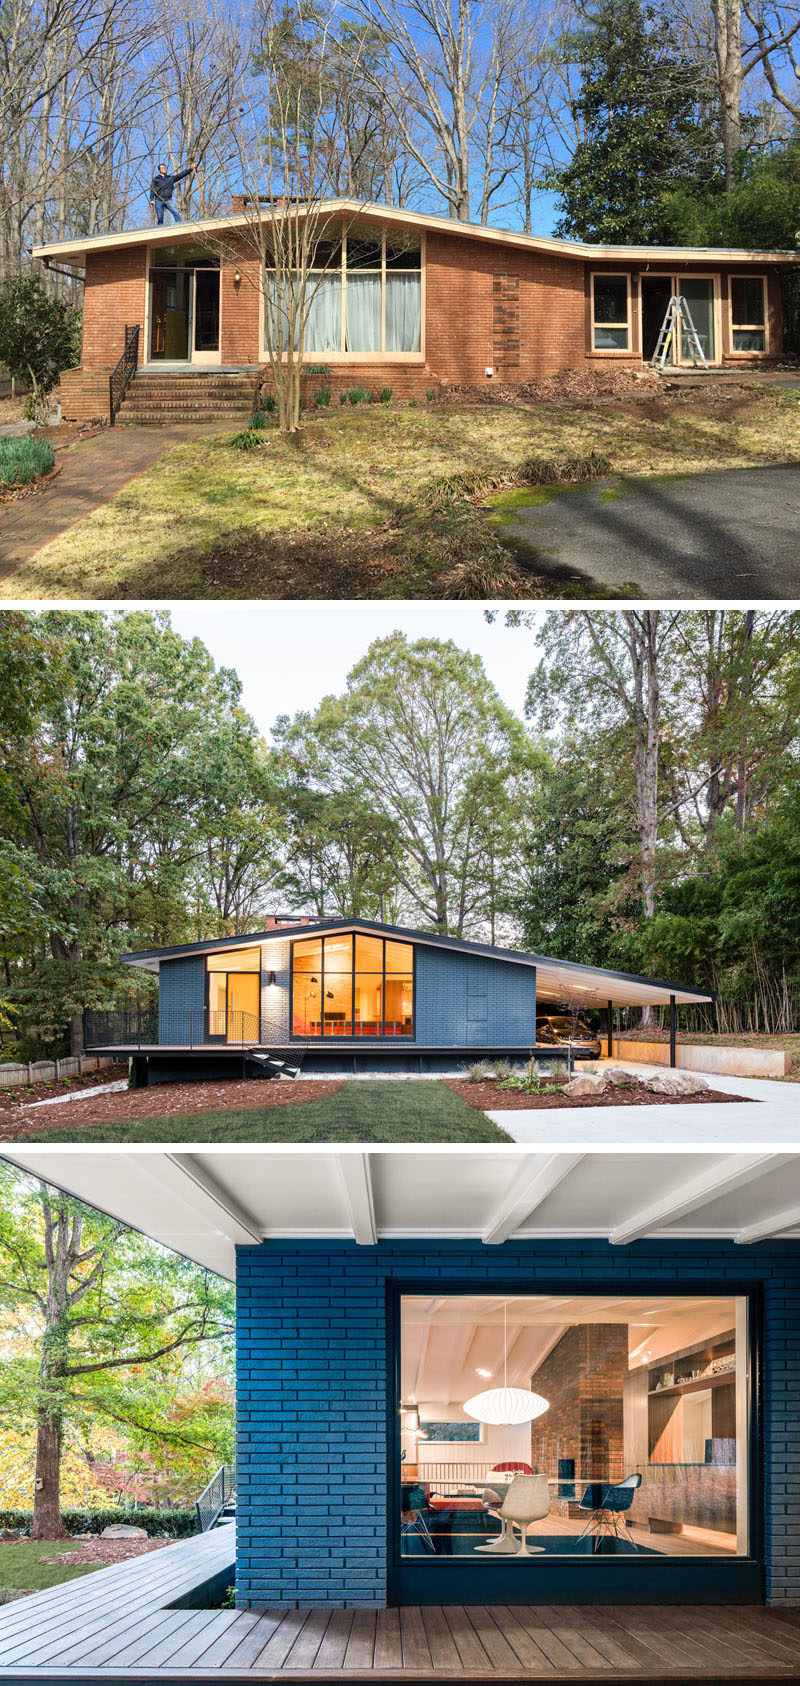 Modern House Exterior: This Mid-Century Modern House In North Carolina Received A